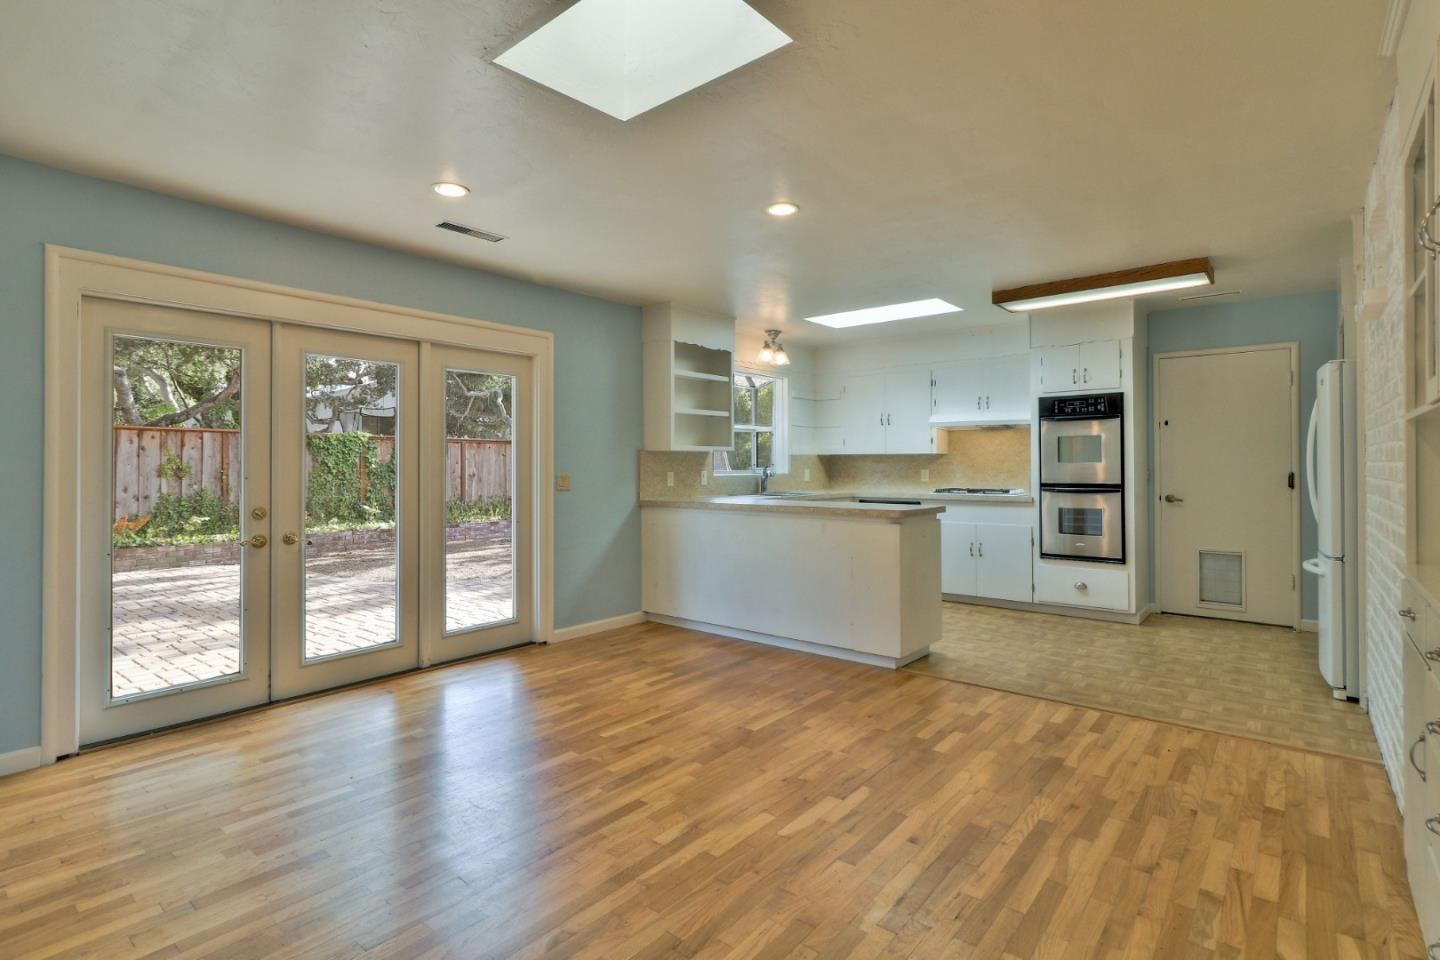 2887 Oak Knoll Road Pebble Beach, CA 93953 - MLS #: ML81730511